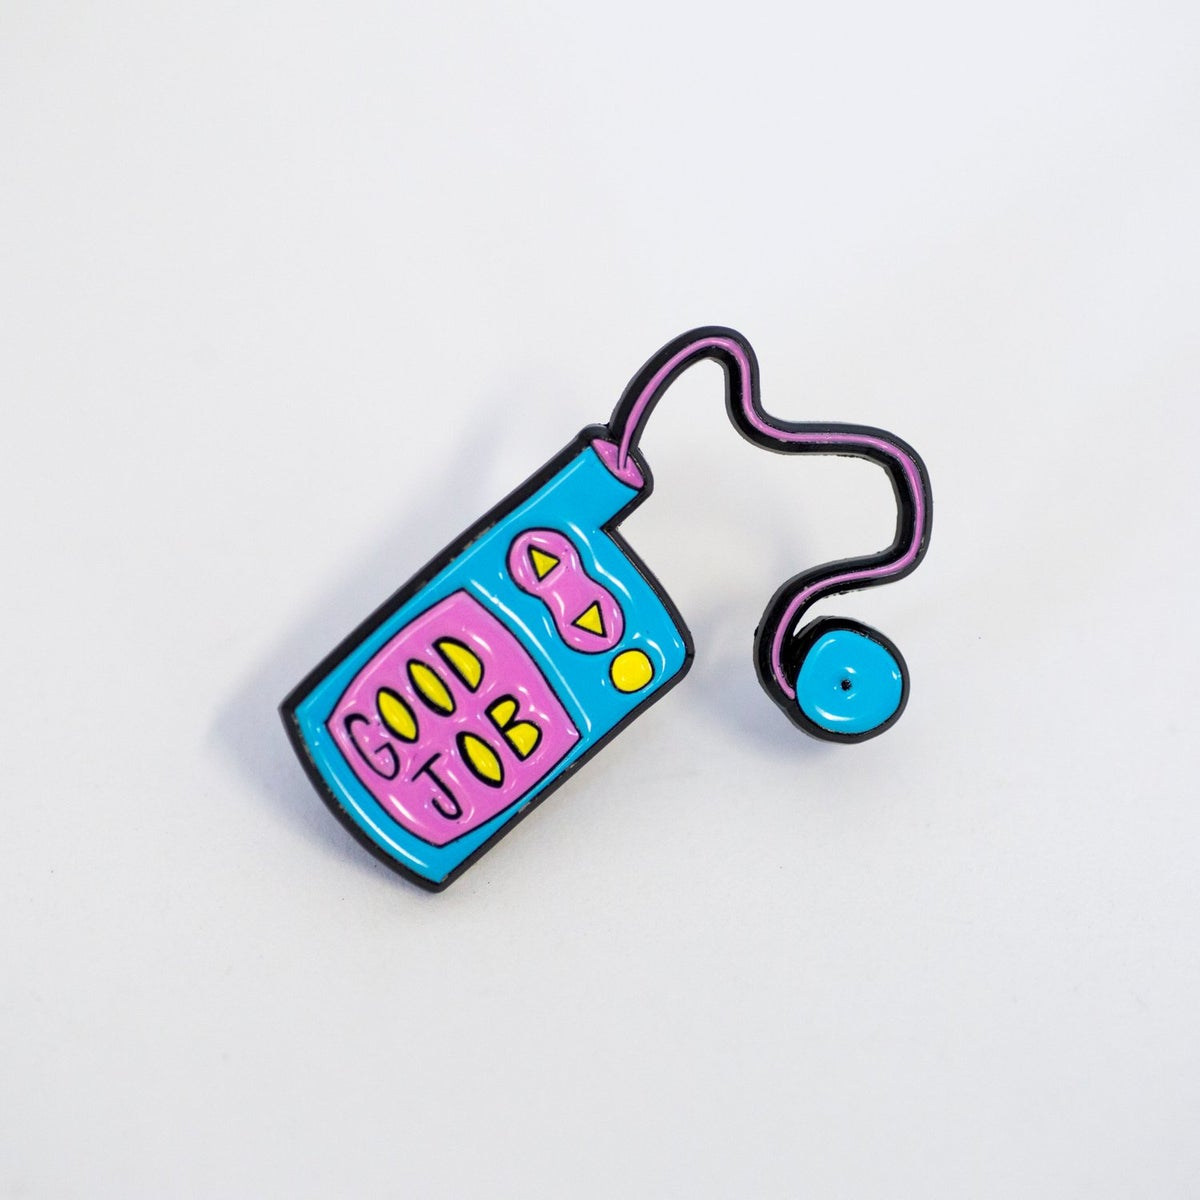 Image of Good Job Label Pin